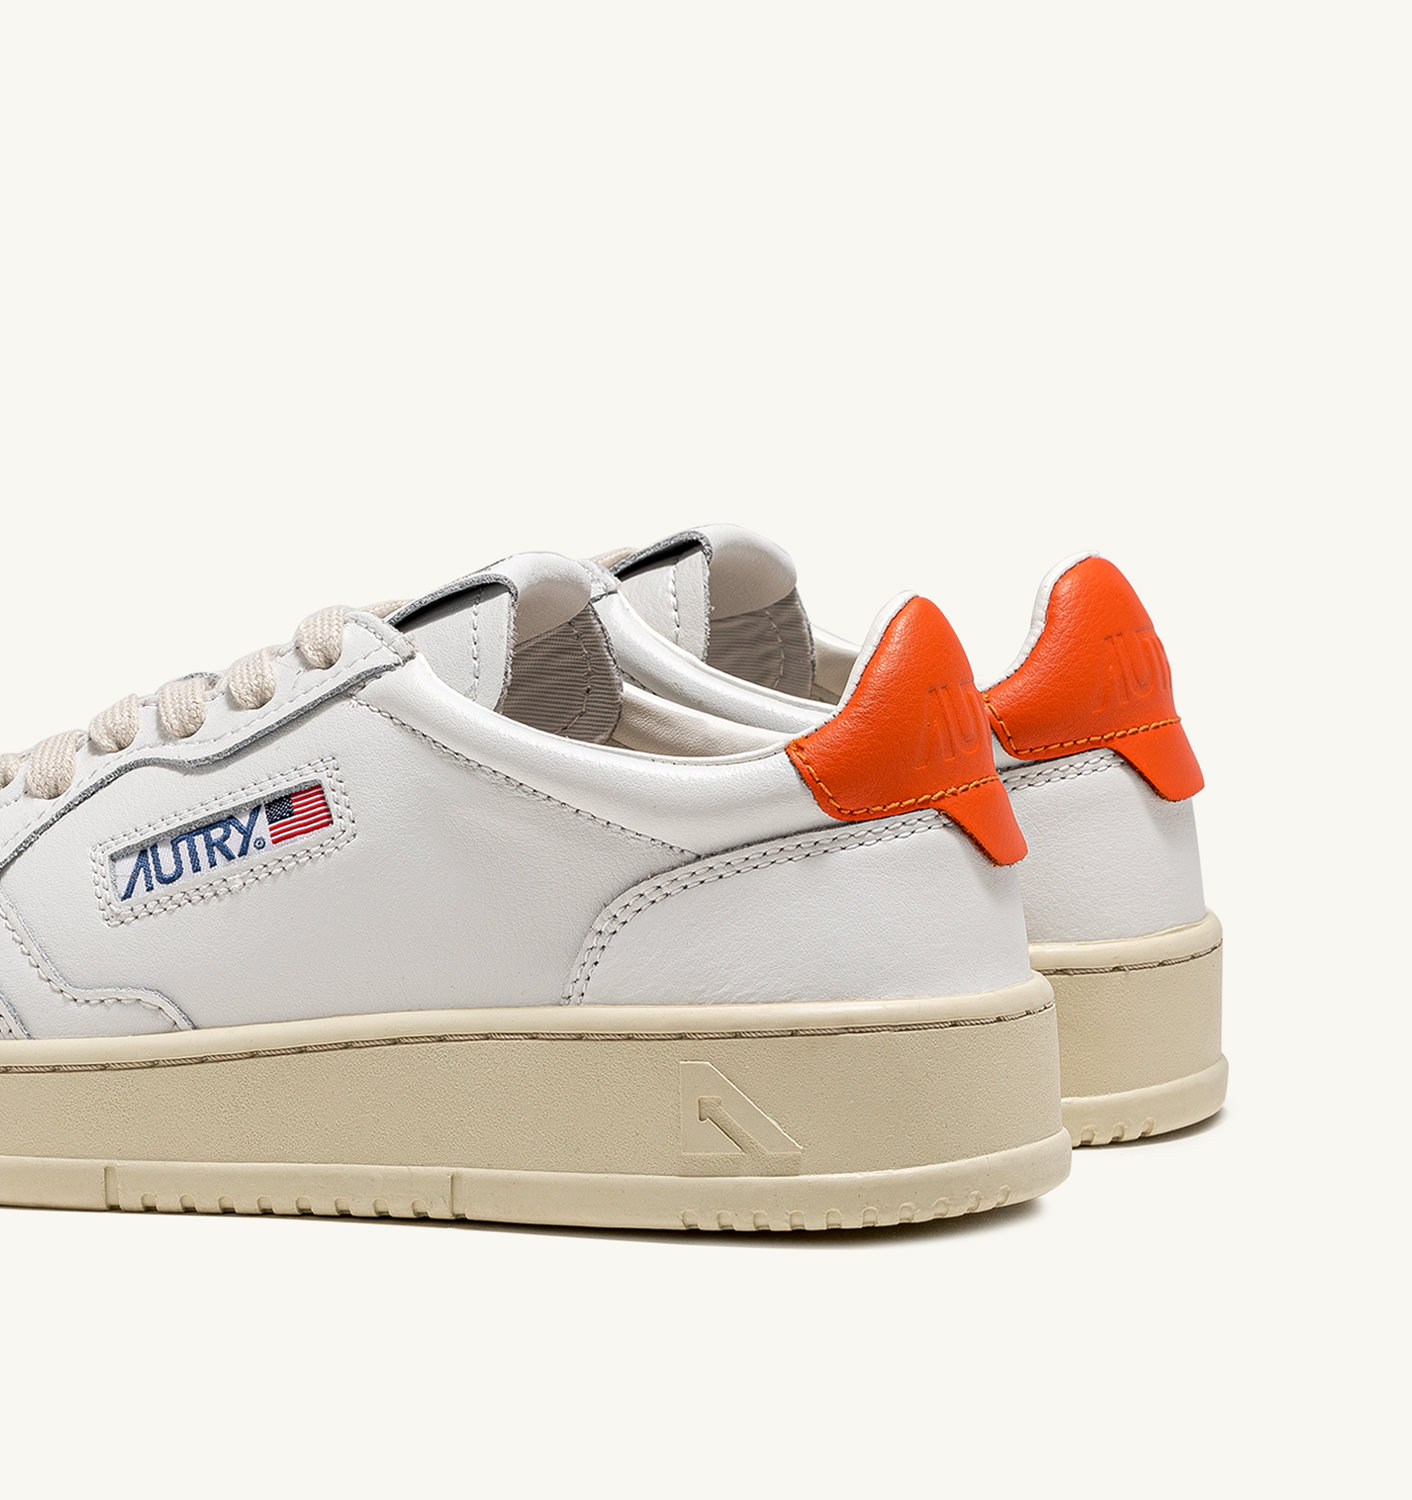 AUTRY: MEDALIST LOW SNEAKERS IN LEATHER COLOR WHITE ORANGE